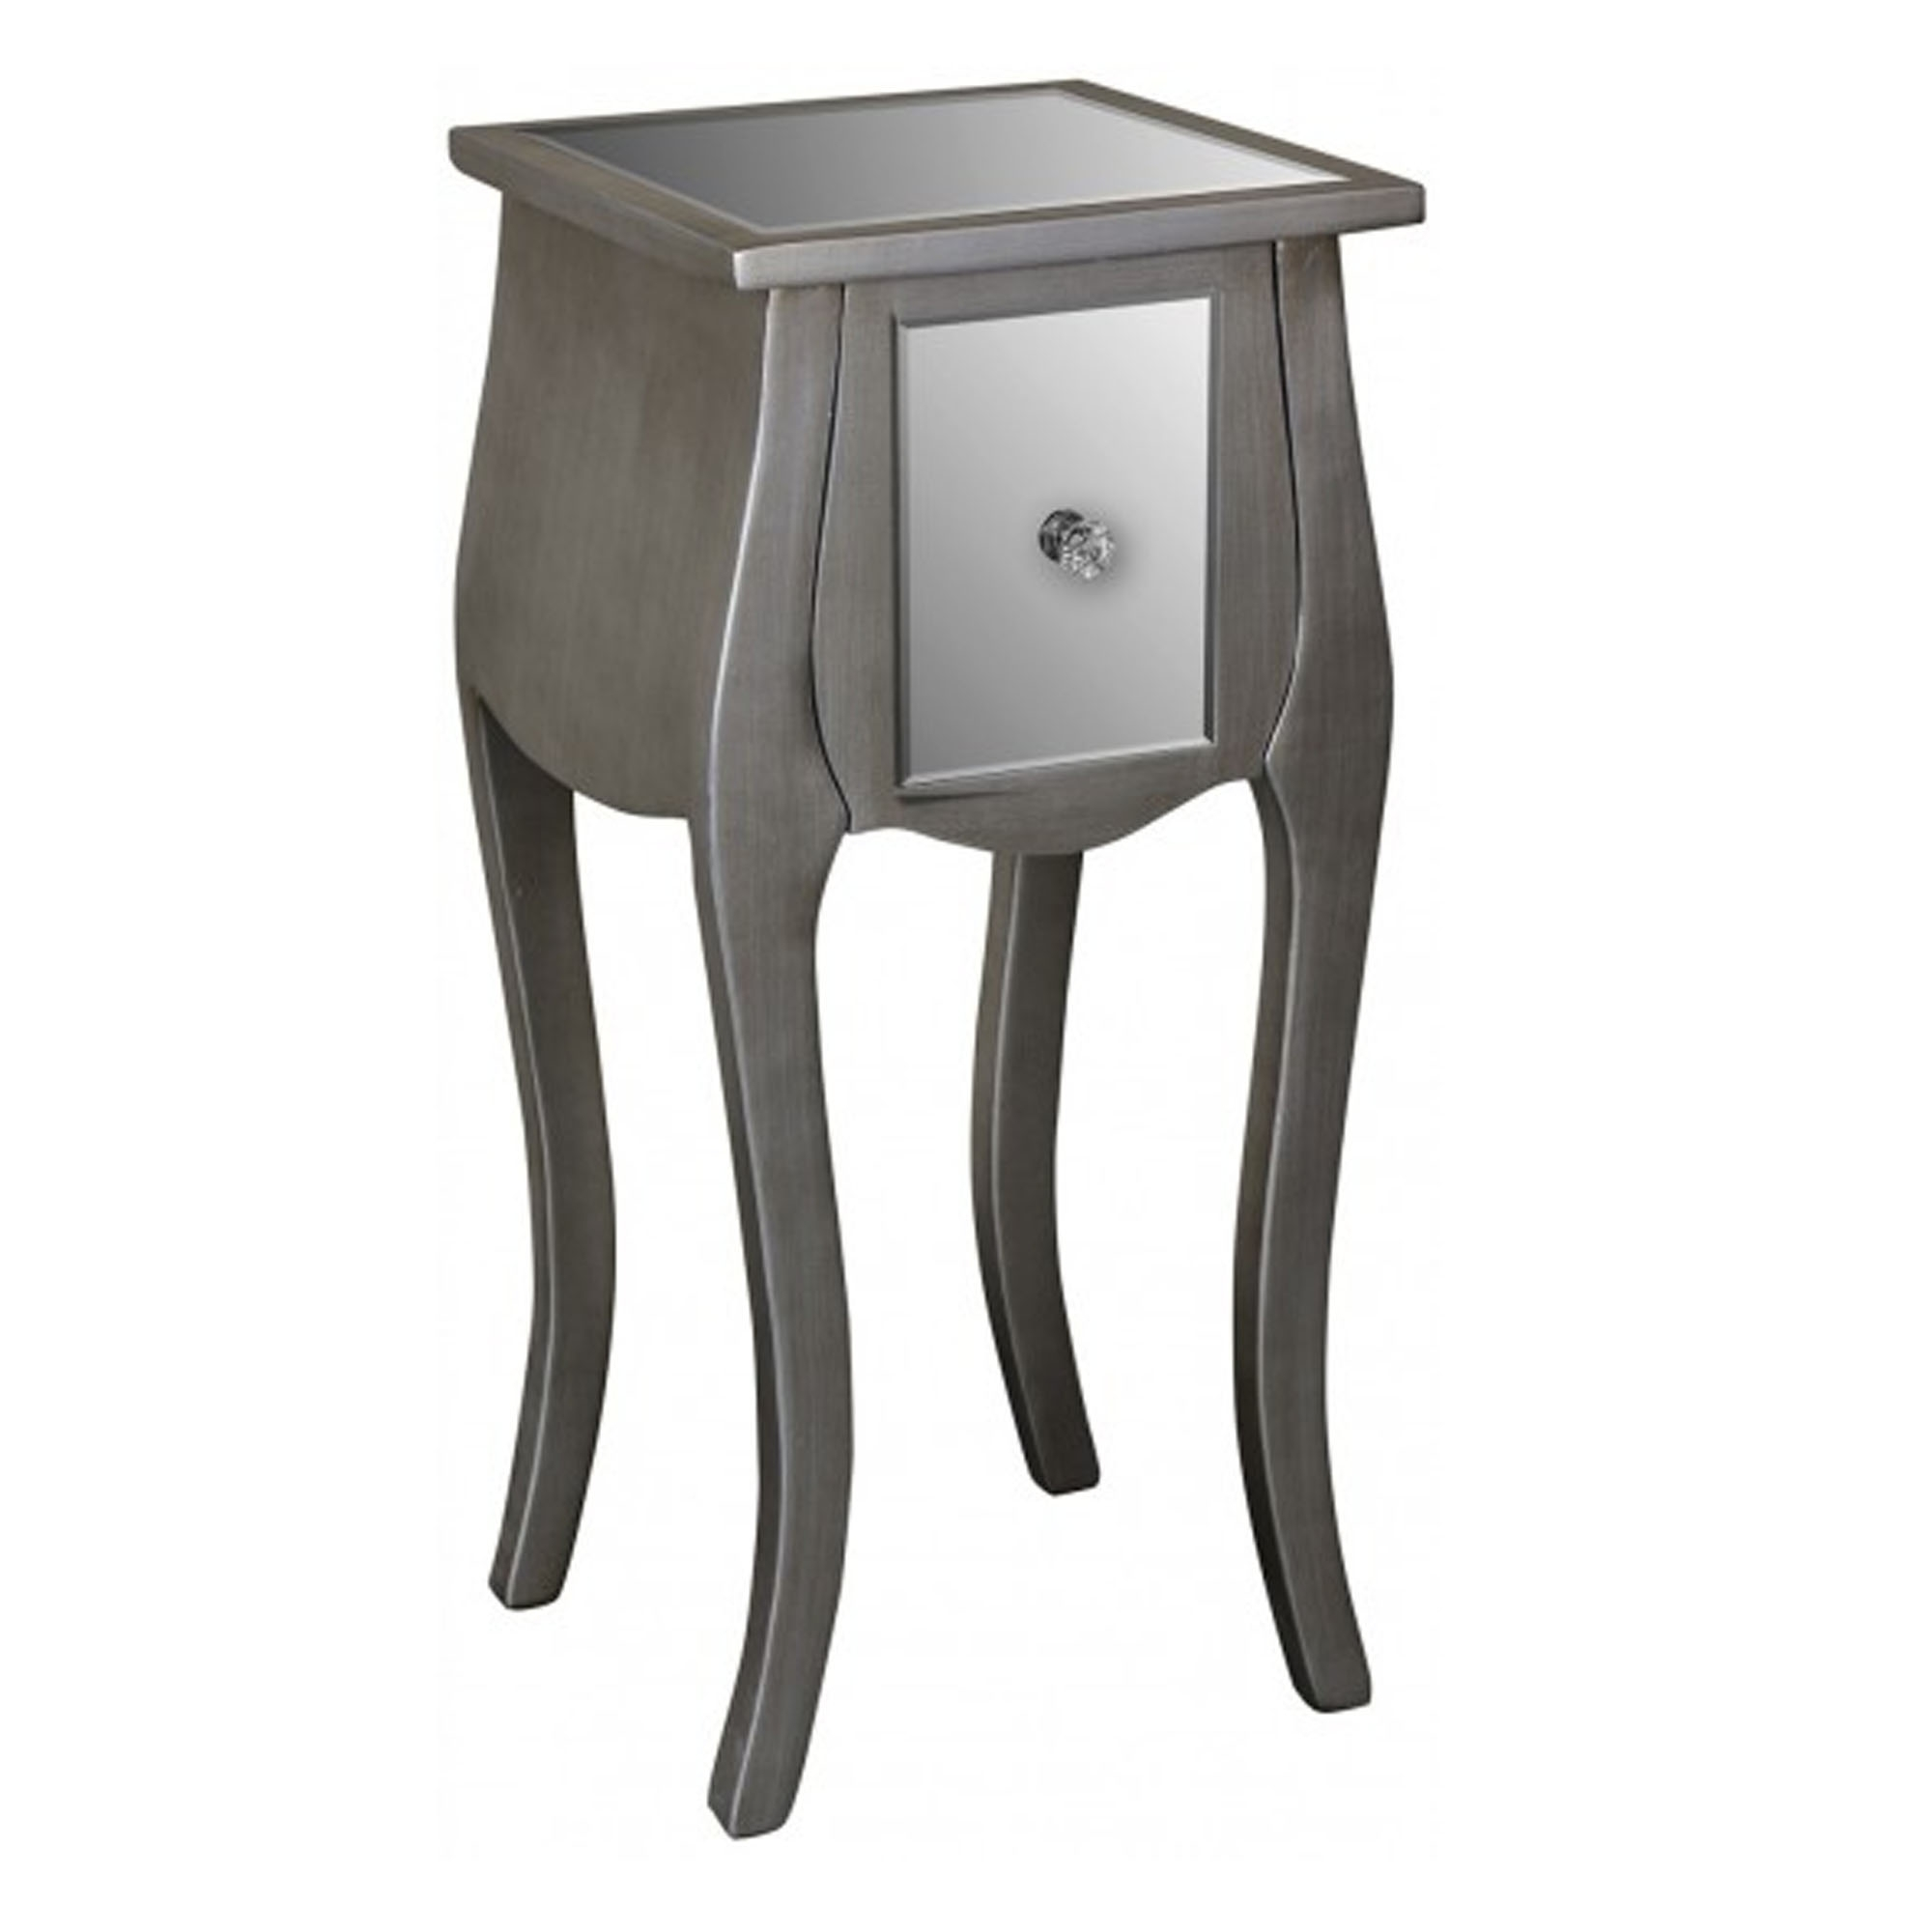 mirrored side table. Opera Mirrored Bedside Table Side